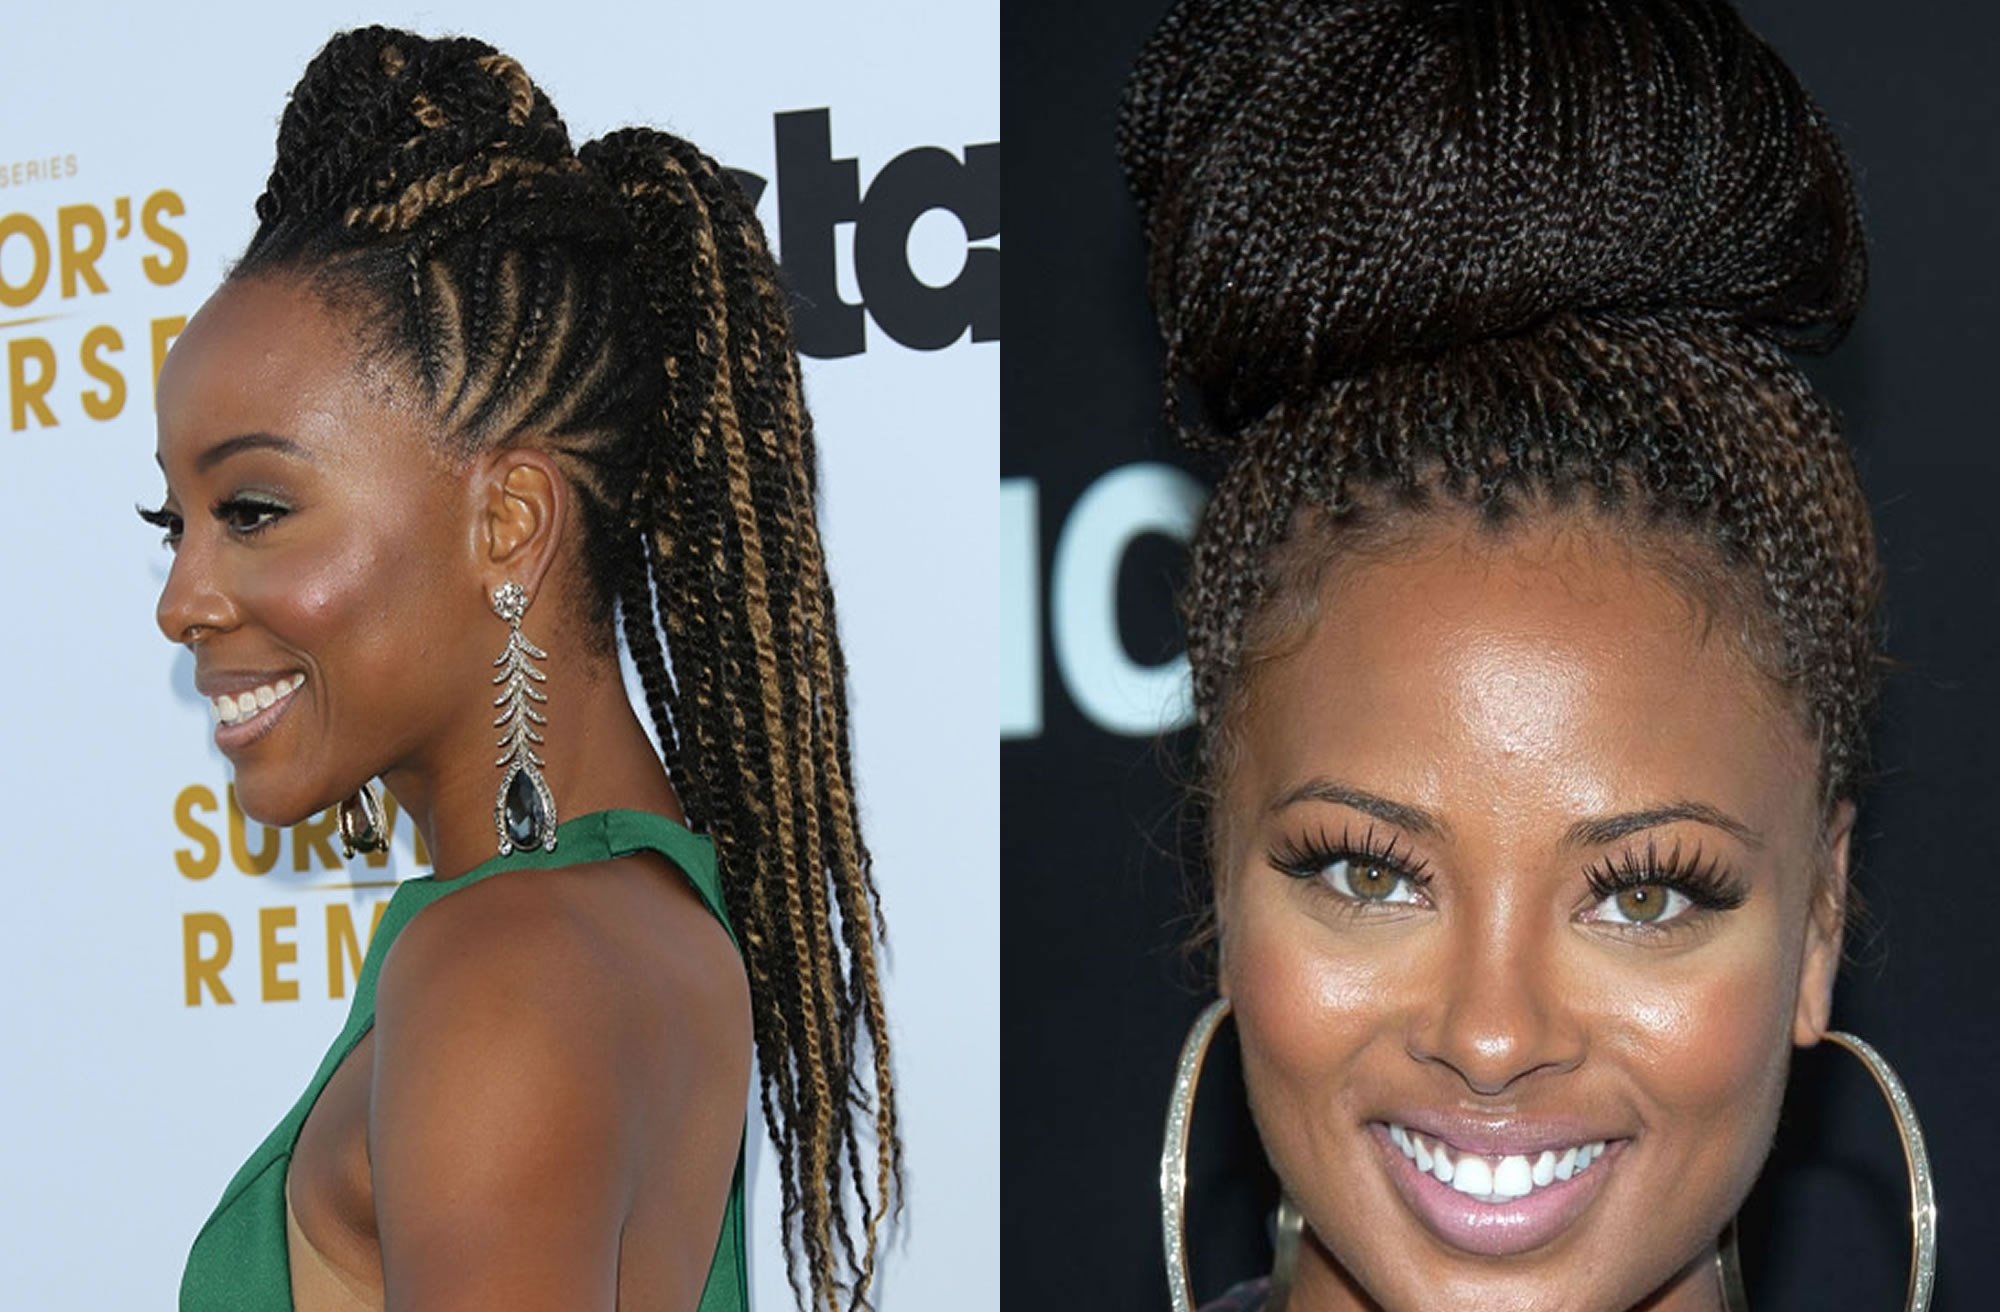 The Best Best 30 Braided Hairstyles For Black Women 2018 2019 Pictures